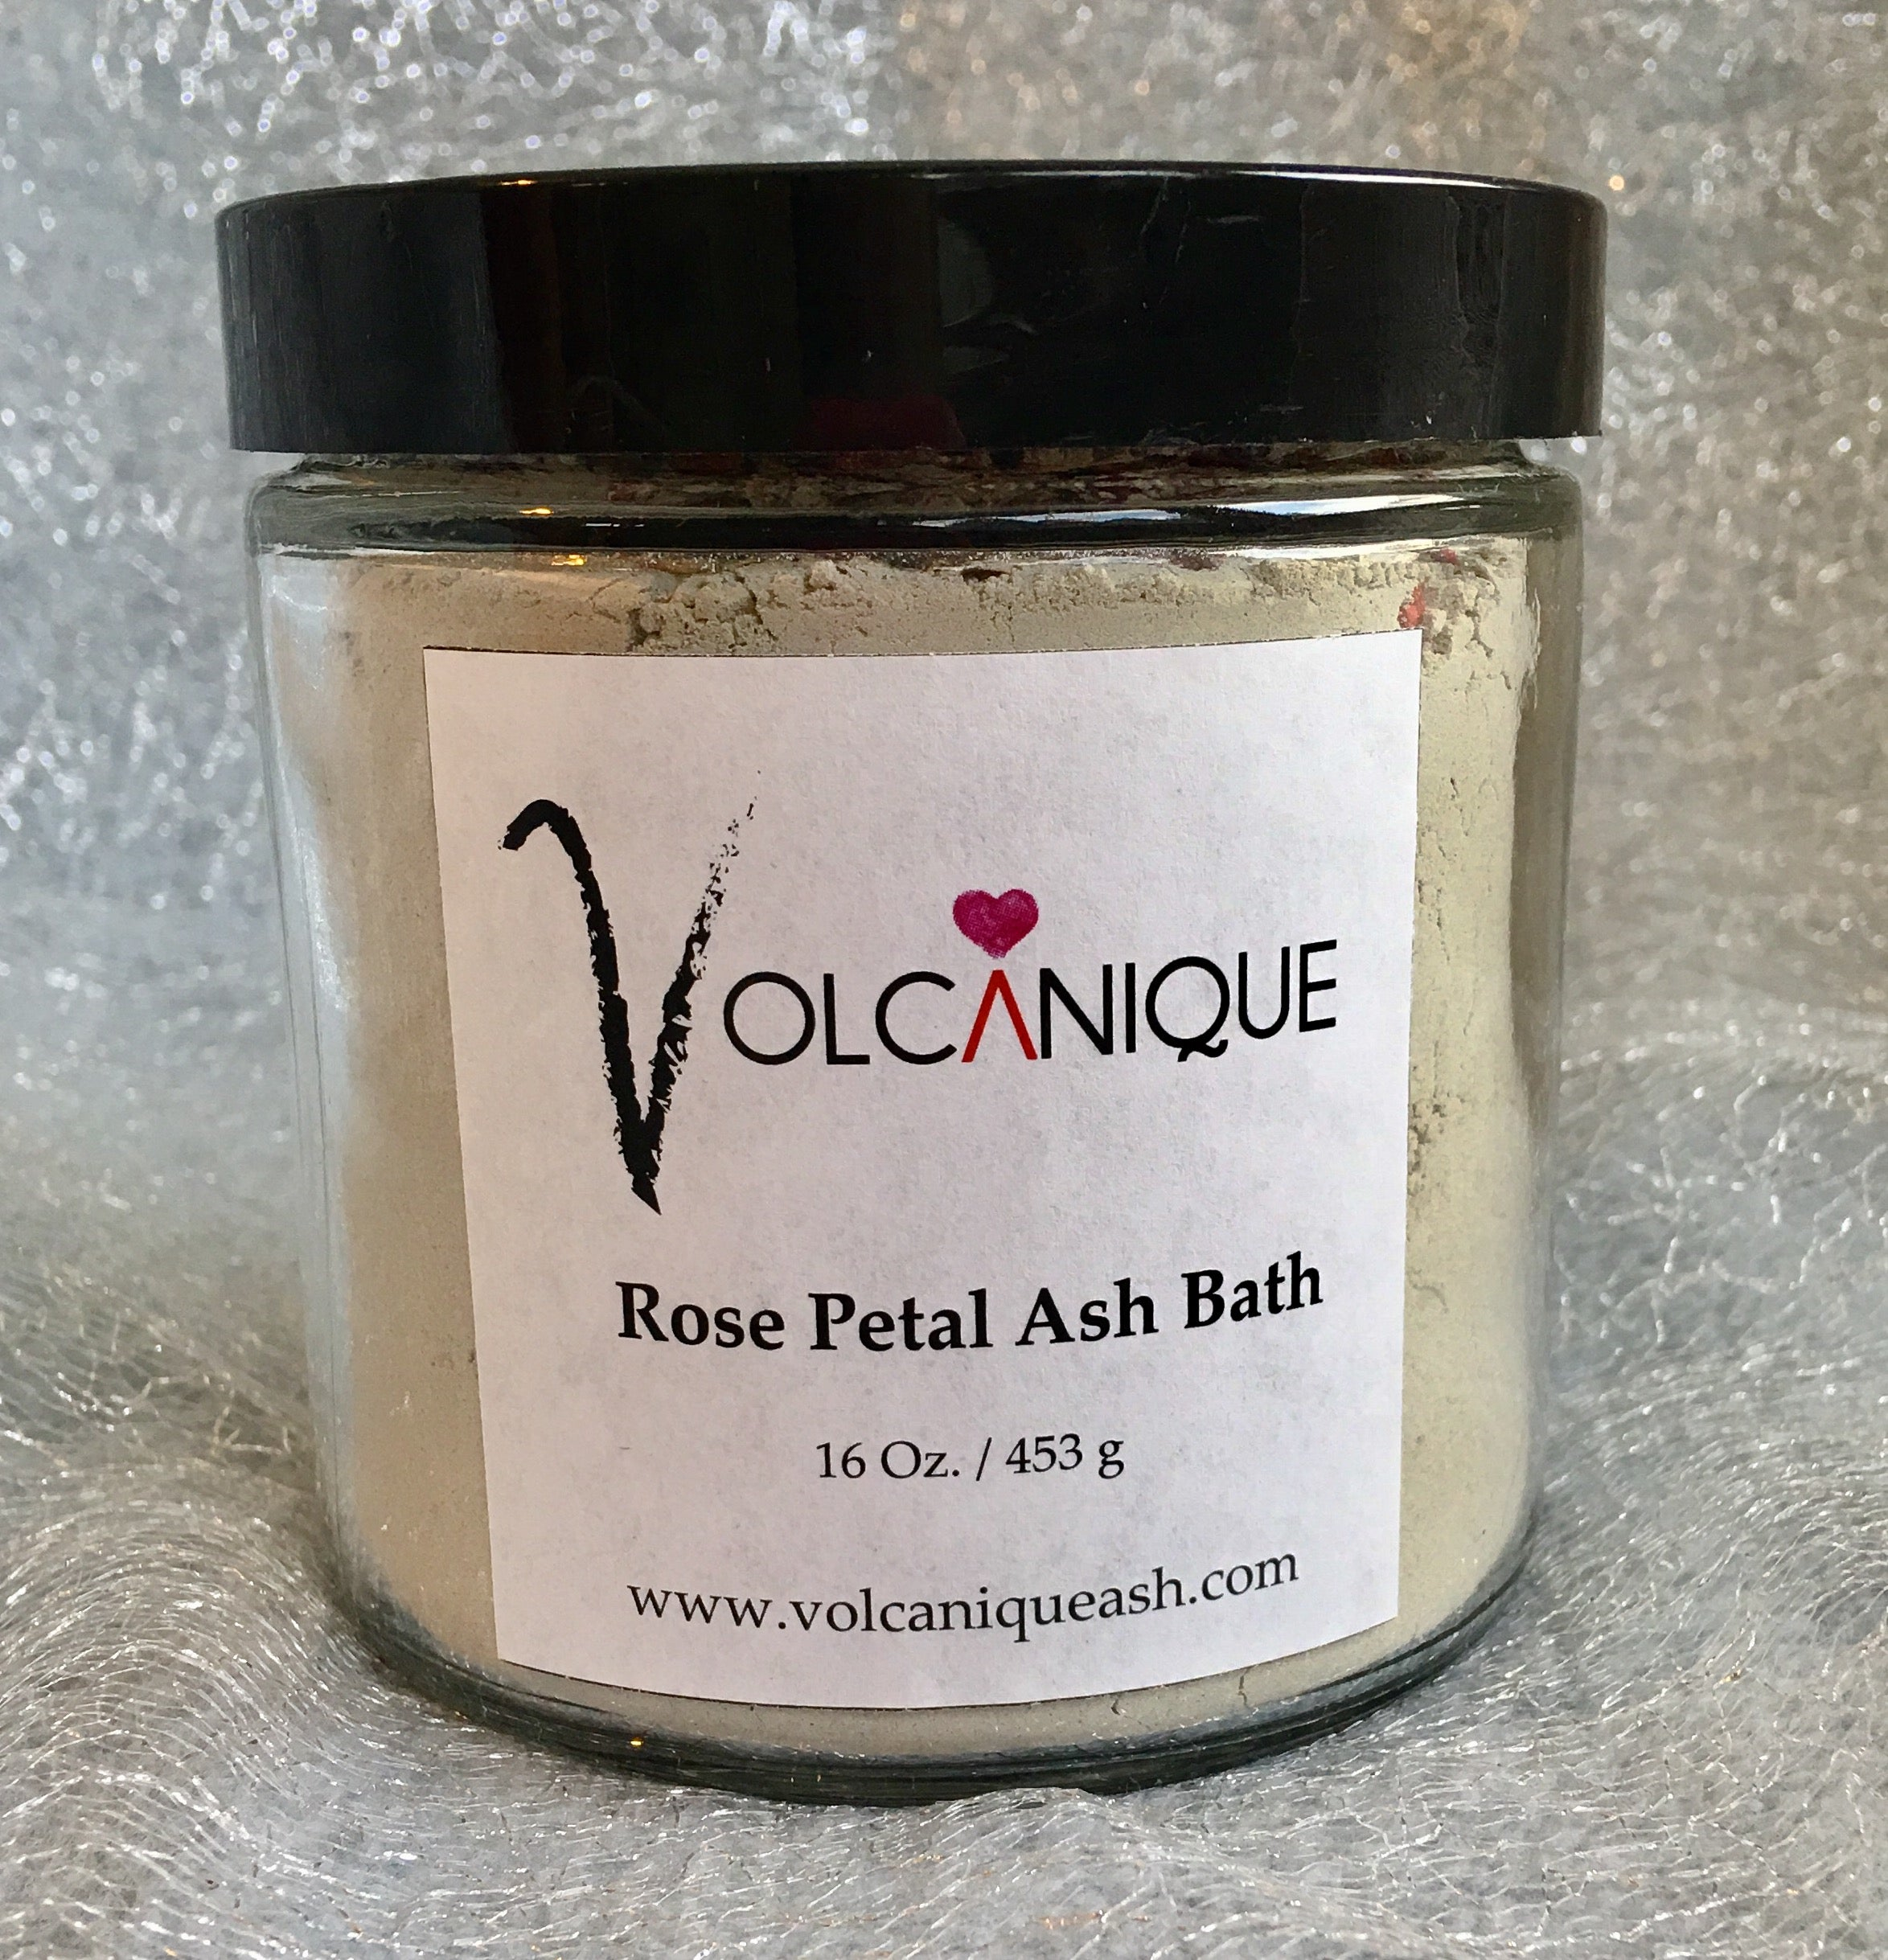 Rose Petal Ash Bath - 16 oz.